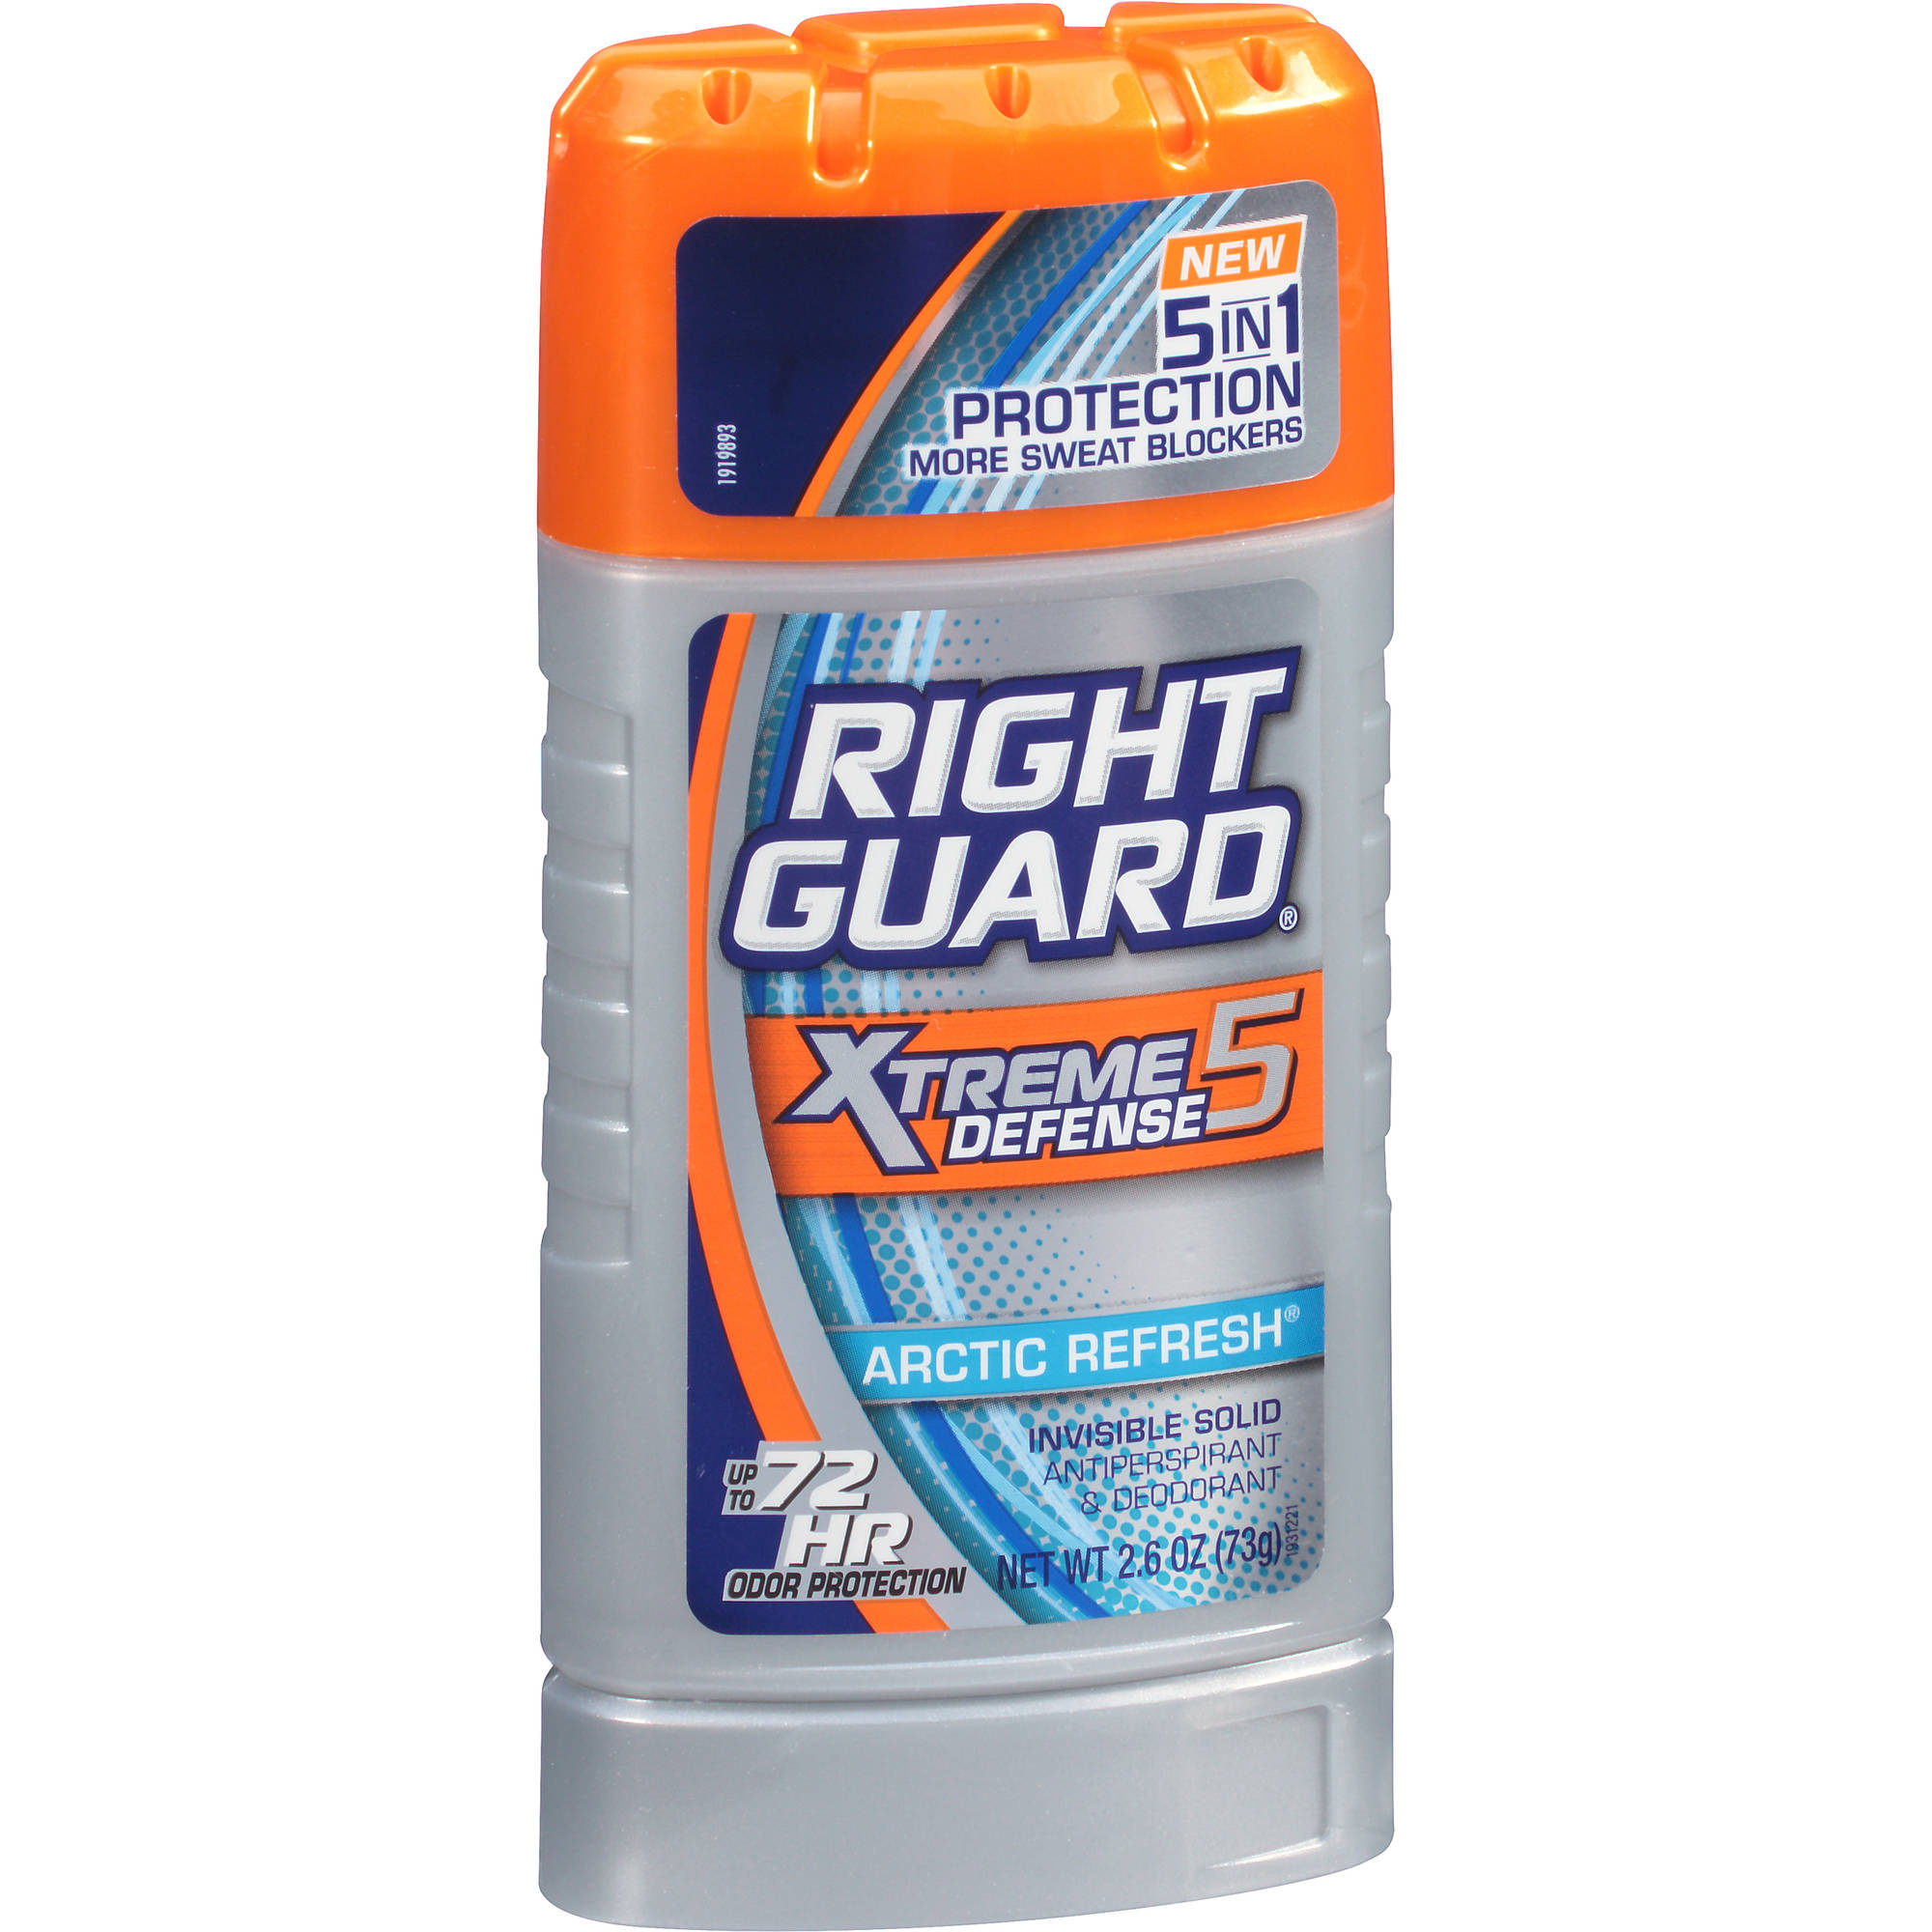 Right Guard Xtreme Invisible Solid Arctic Refresh w/Powerstipe Anti-Perspirant/Deodorant, 2.6 oz